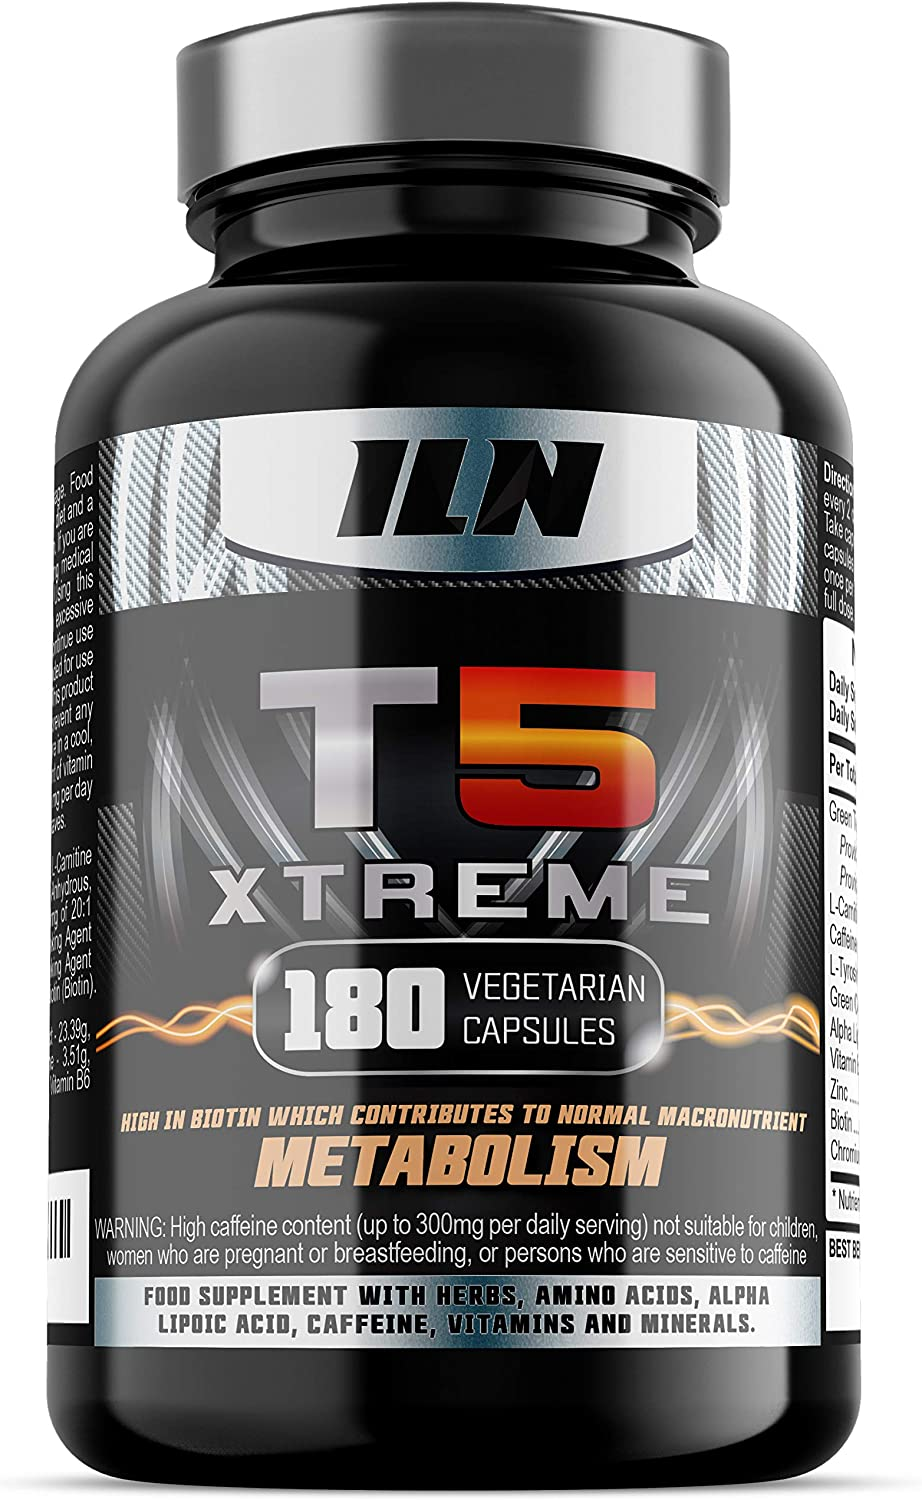 T5 Xtreme for Men and Women - HIGH in CHROMIUM which contributes to normal  macronutrient METABOLISM & the maintenance of normal BLOOD GLUCOSE LEVELS -  180 Vegetarian Capsules: Amazon.co.uk: Health & Personal